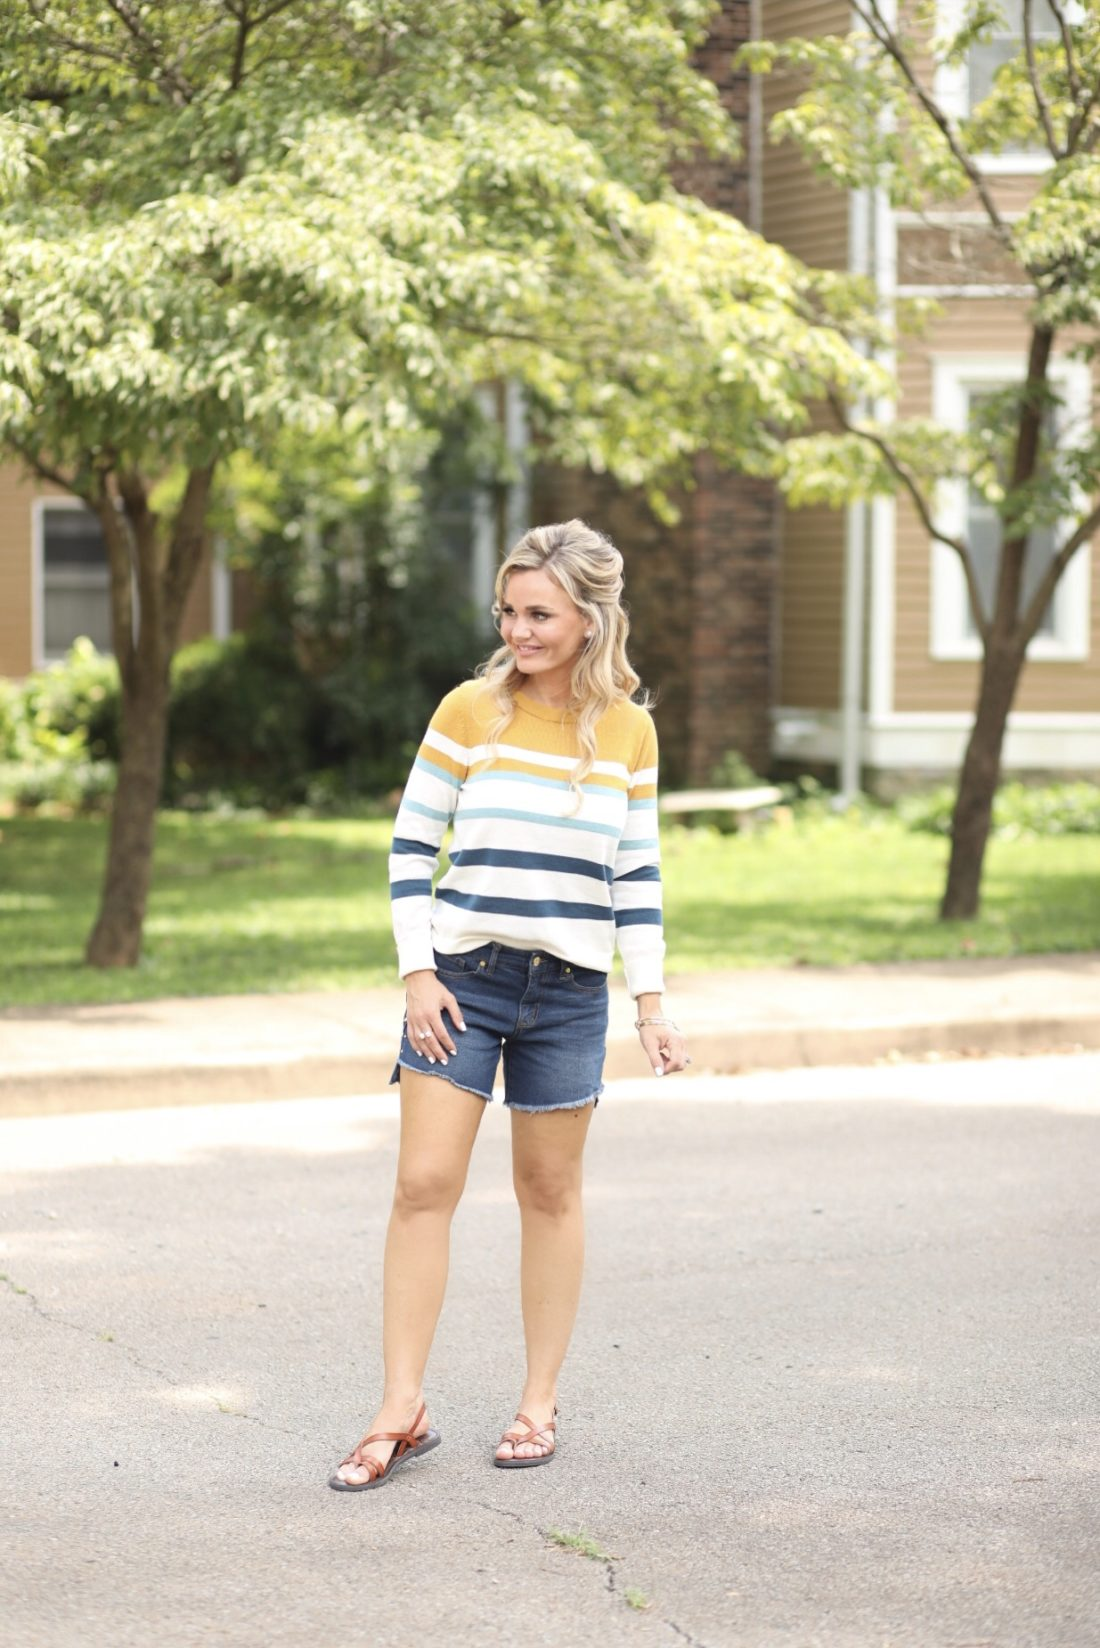 Stylish Outfits from Walmart - Fall Sweater